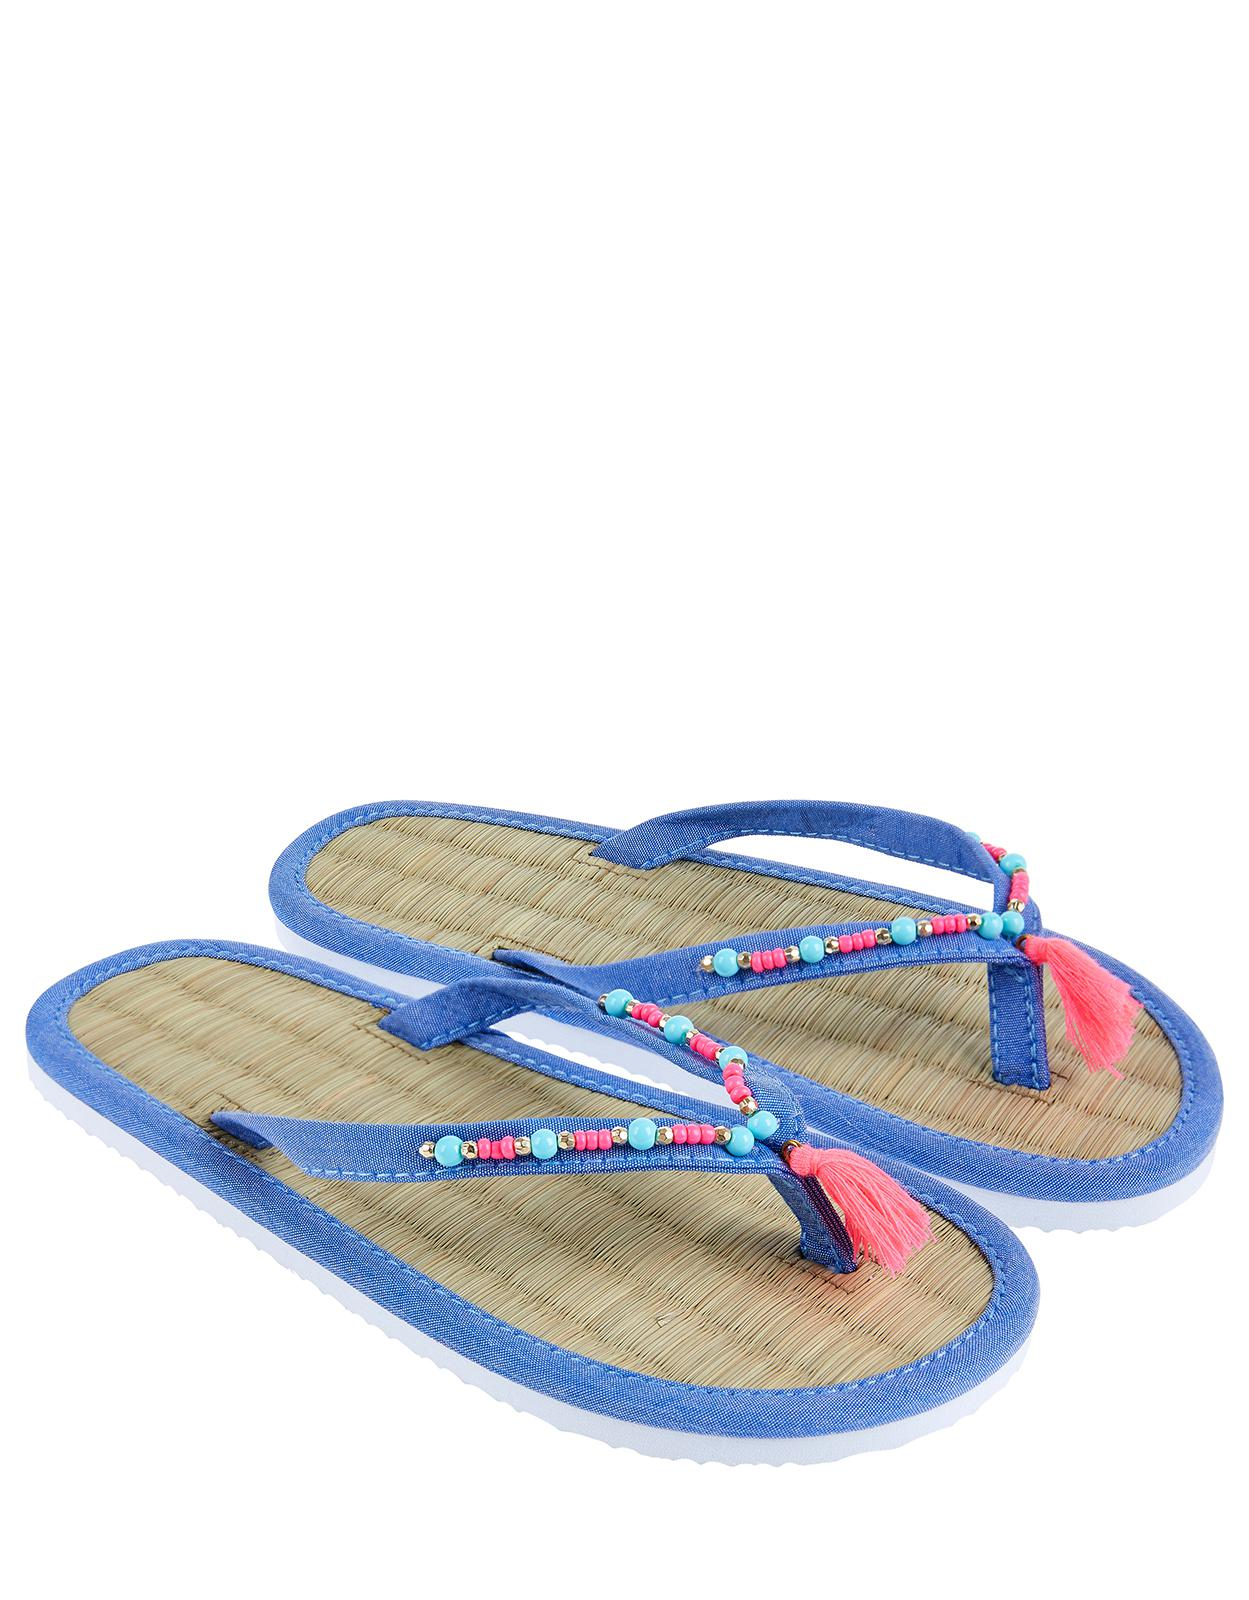 104cad43f Accessorize Maya Seagrass Flip Flop in Blue - Lyst